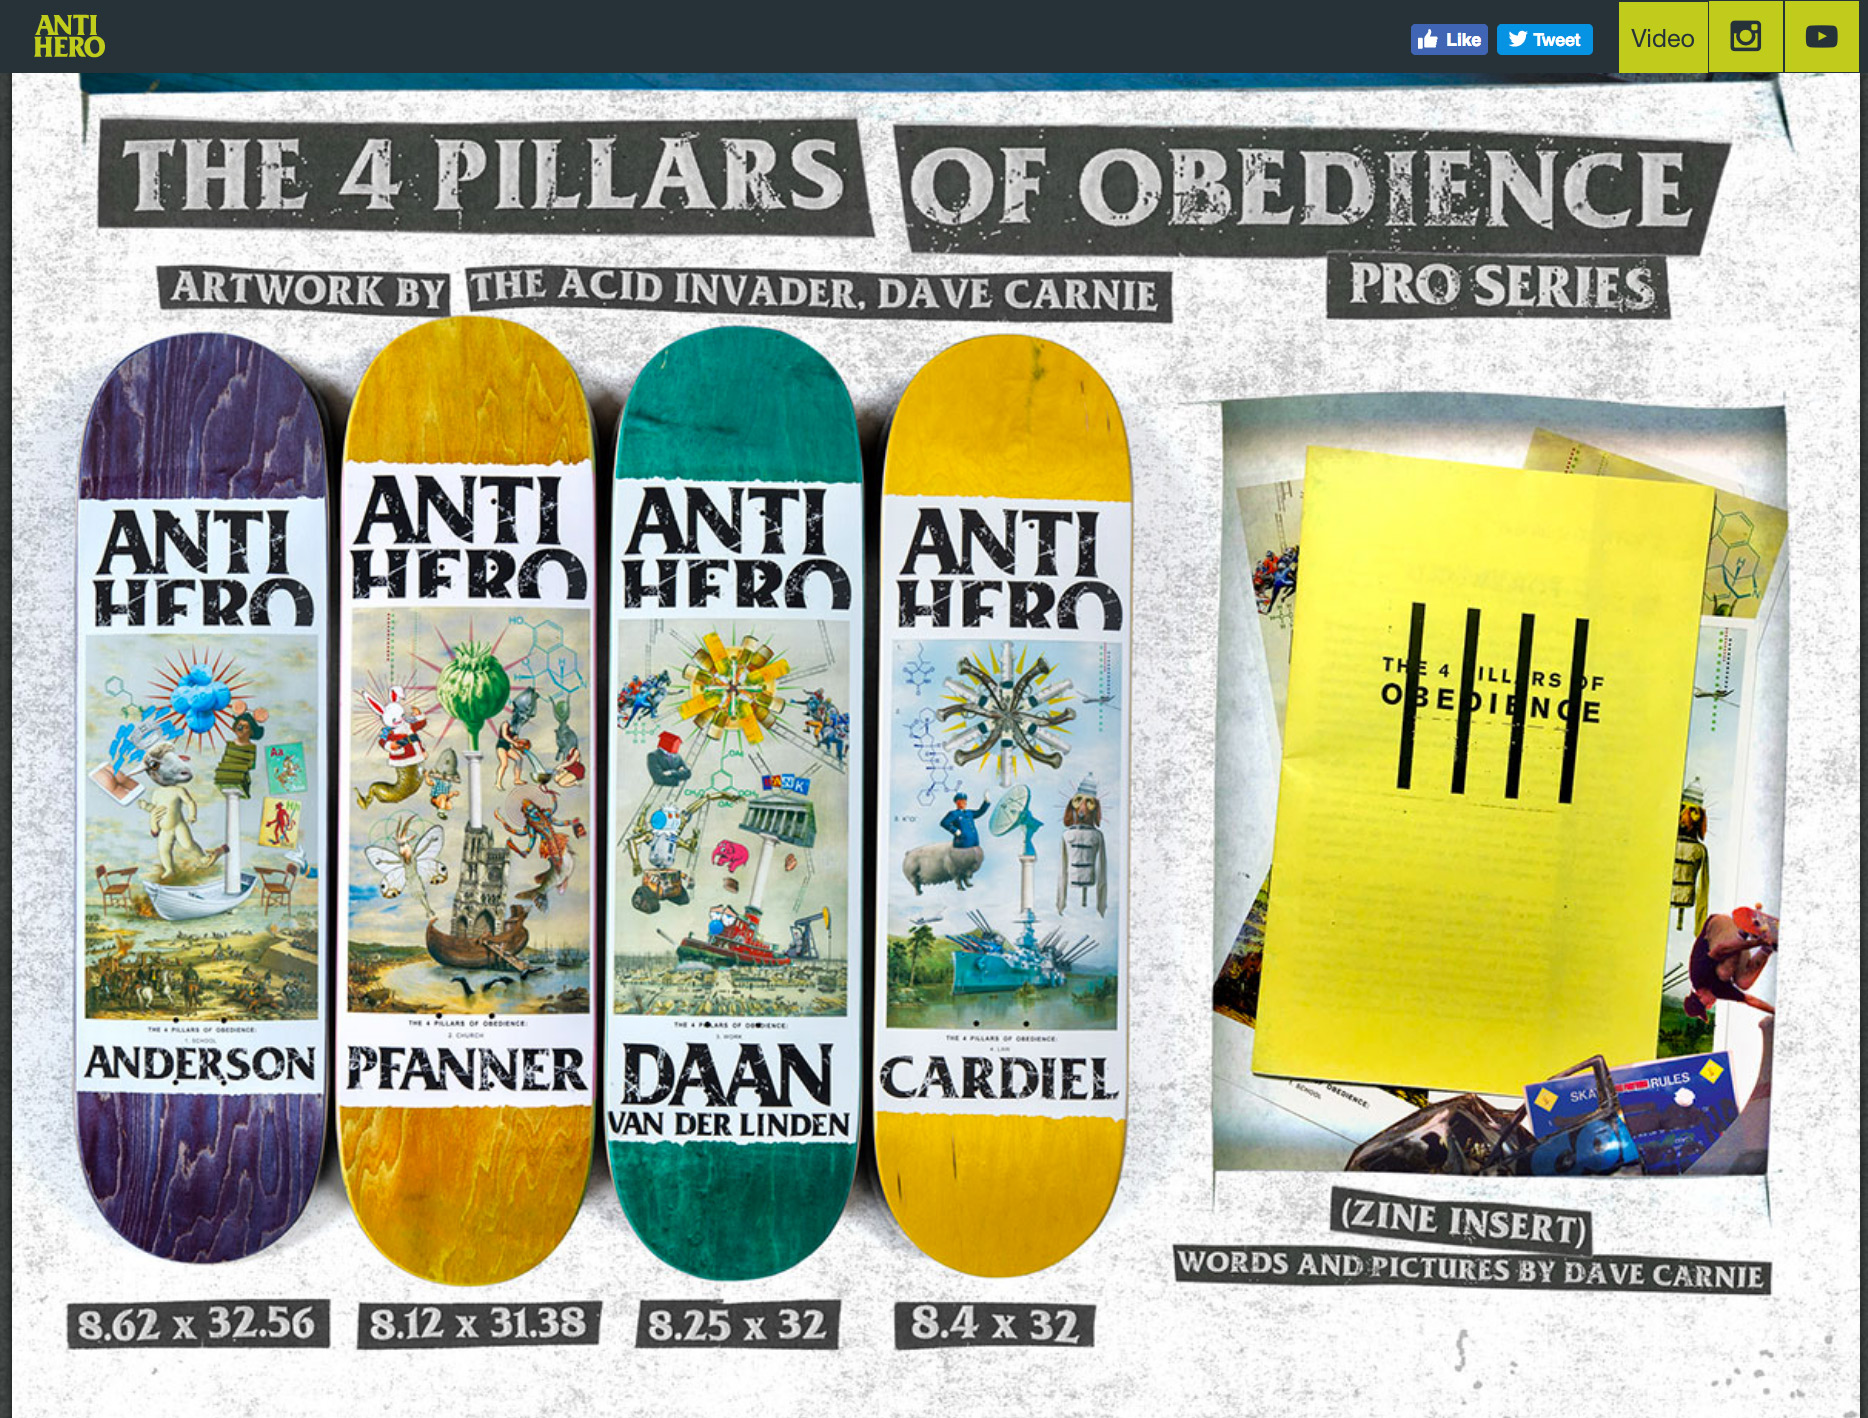 The Four Pillars Of Obedience, From Antihero - Four graphics for Antihero board collection. Each board was packaged with AH stickers, postcards of all four graphics, and a zine containing the original